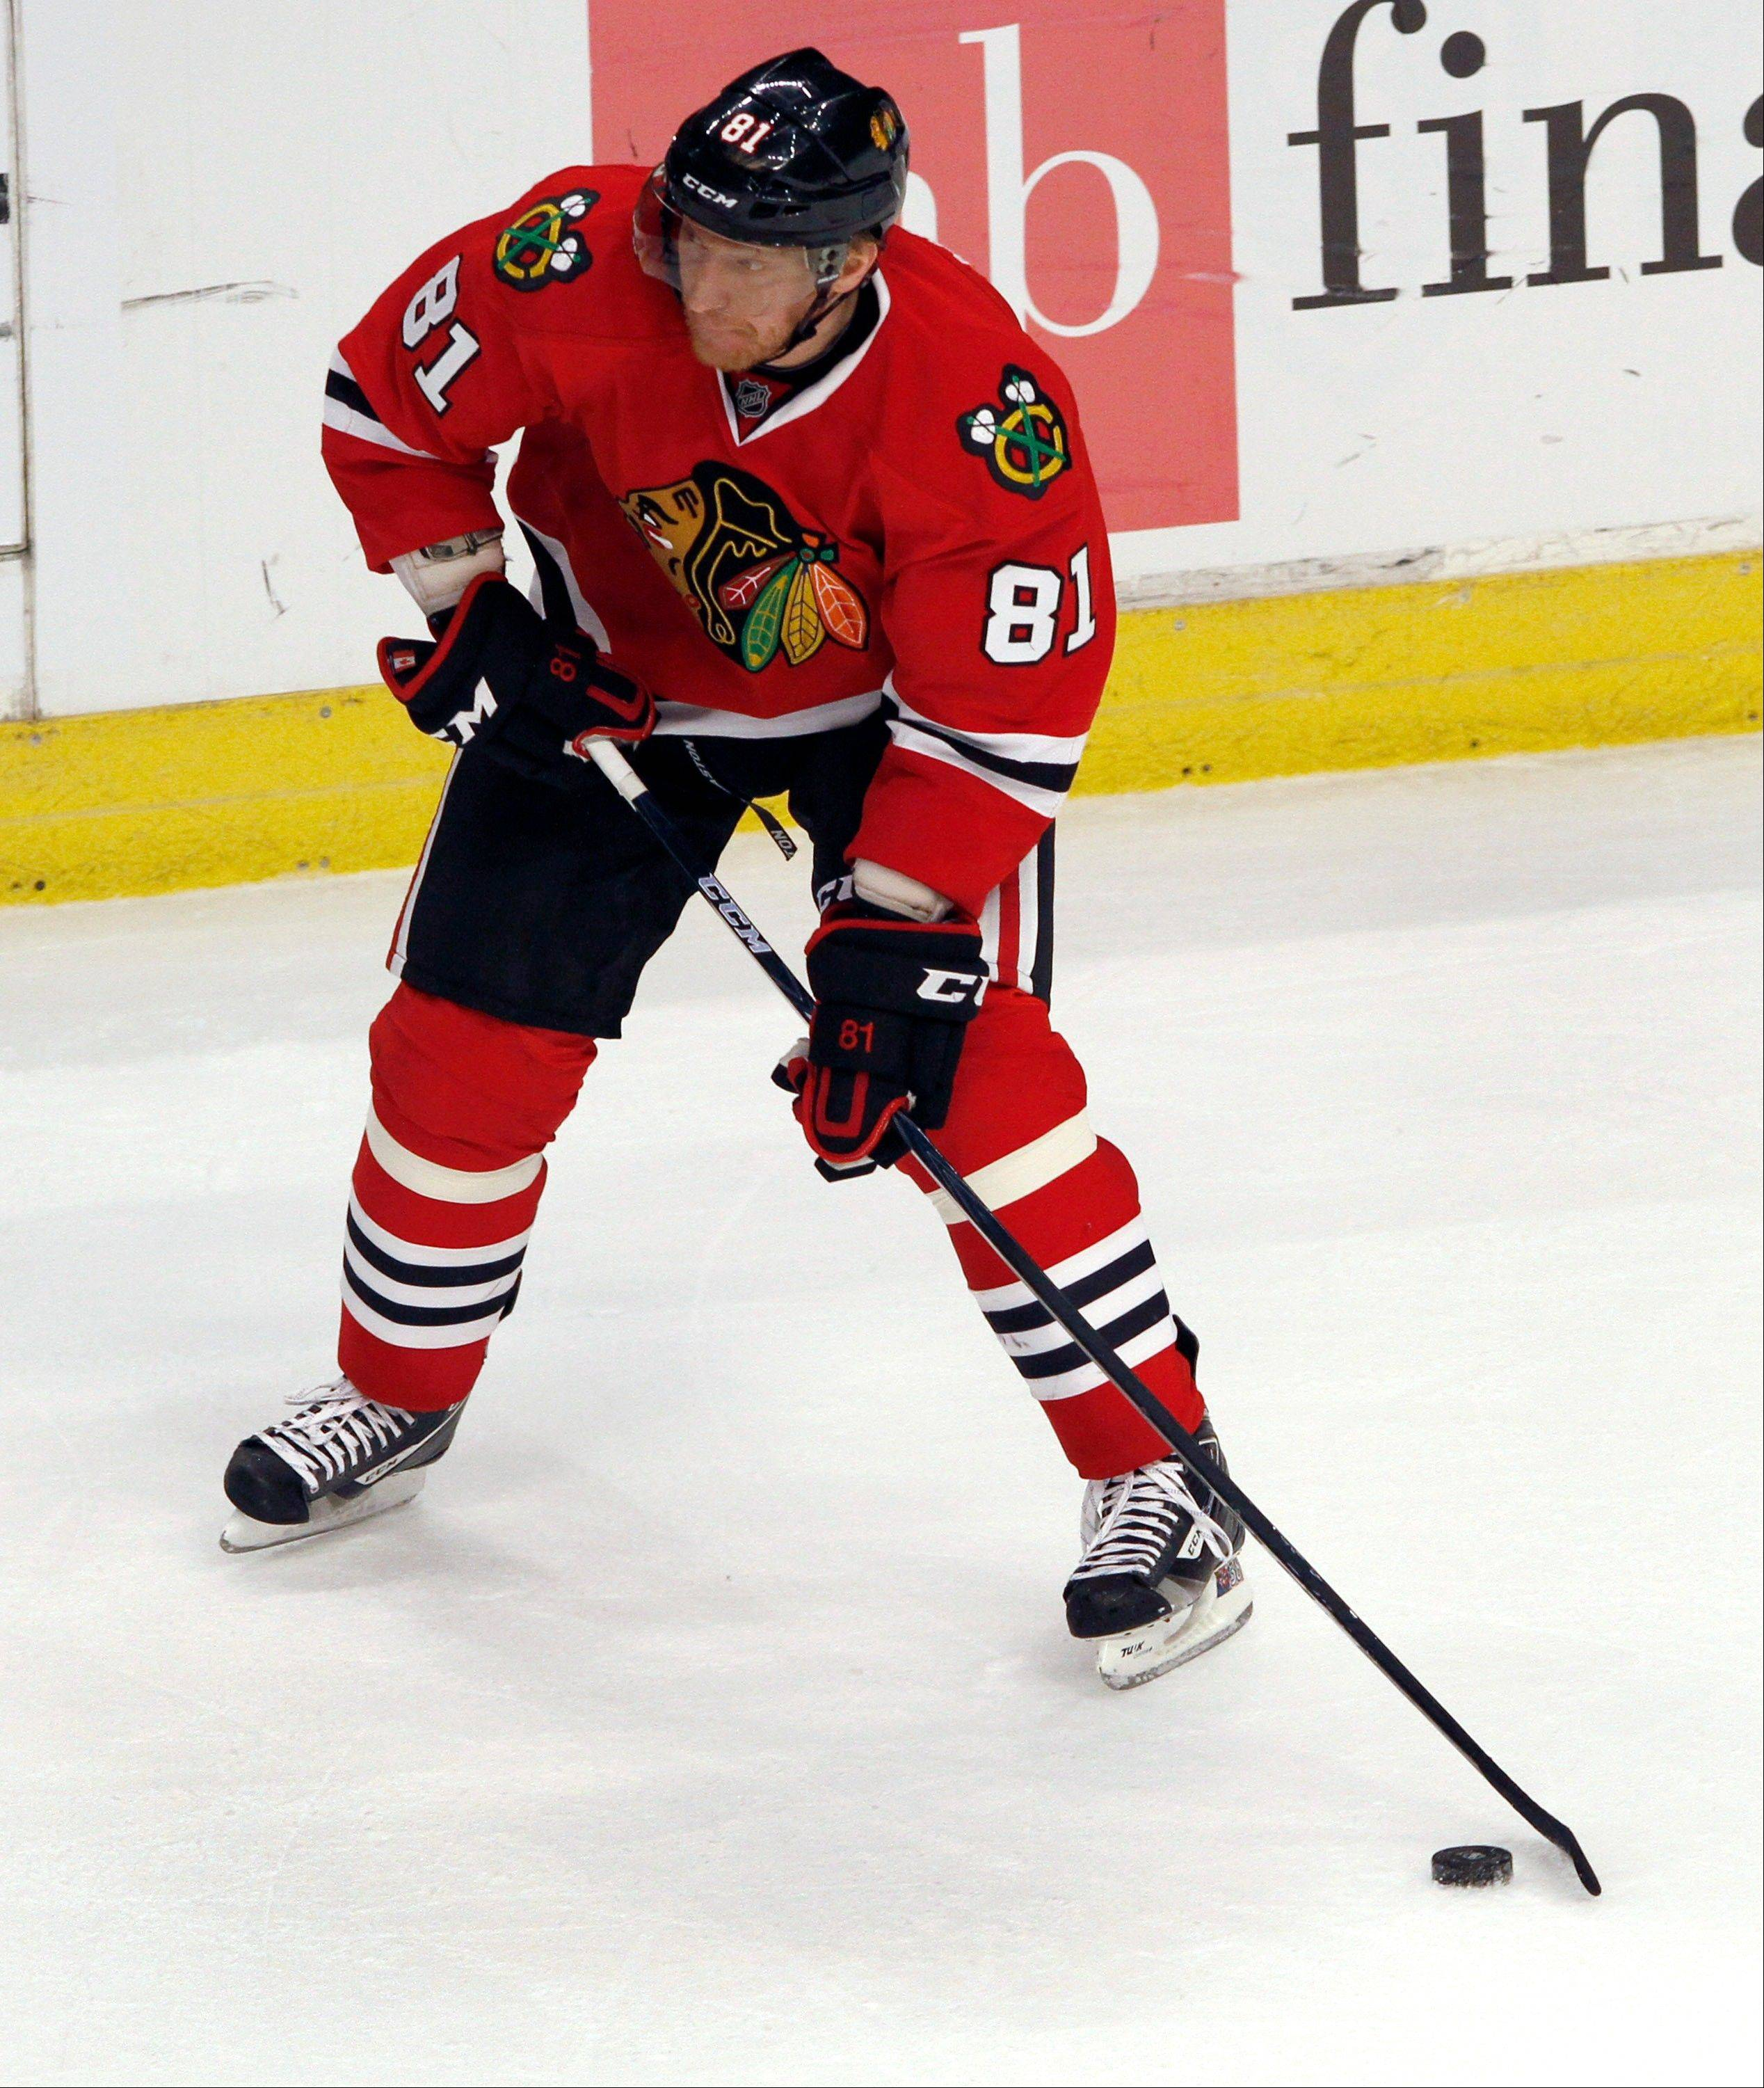 Blackhawks forward Marian Hossa should be fully recovered from his concussion when training camp opens. The Hawks have other roster questions to settle before the season starts.